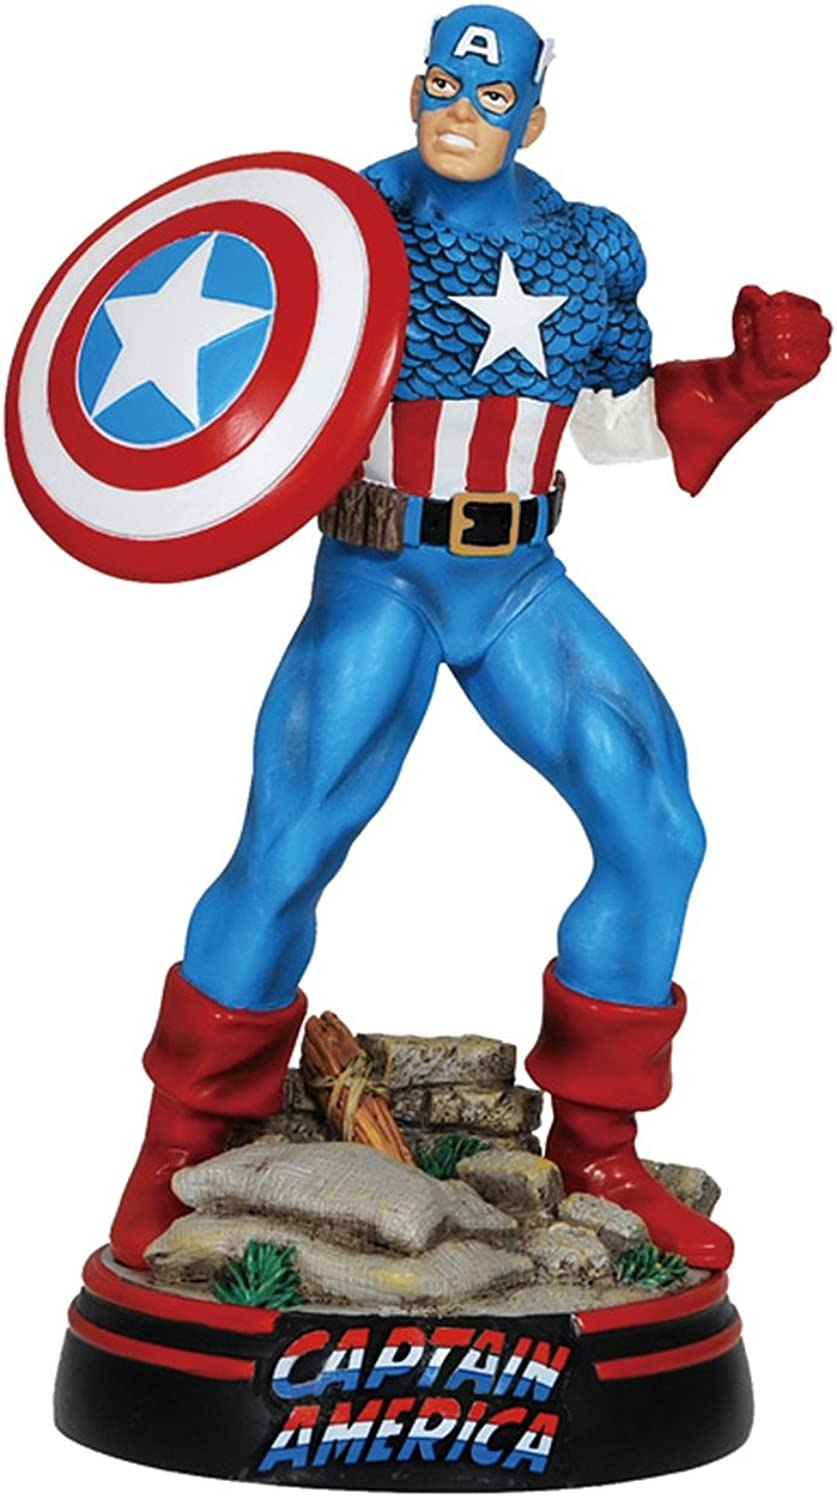 Figurine  Marvel  Captain America  Large New Licensed Gifts Toys 22971